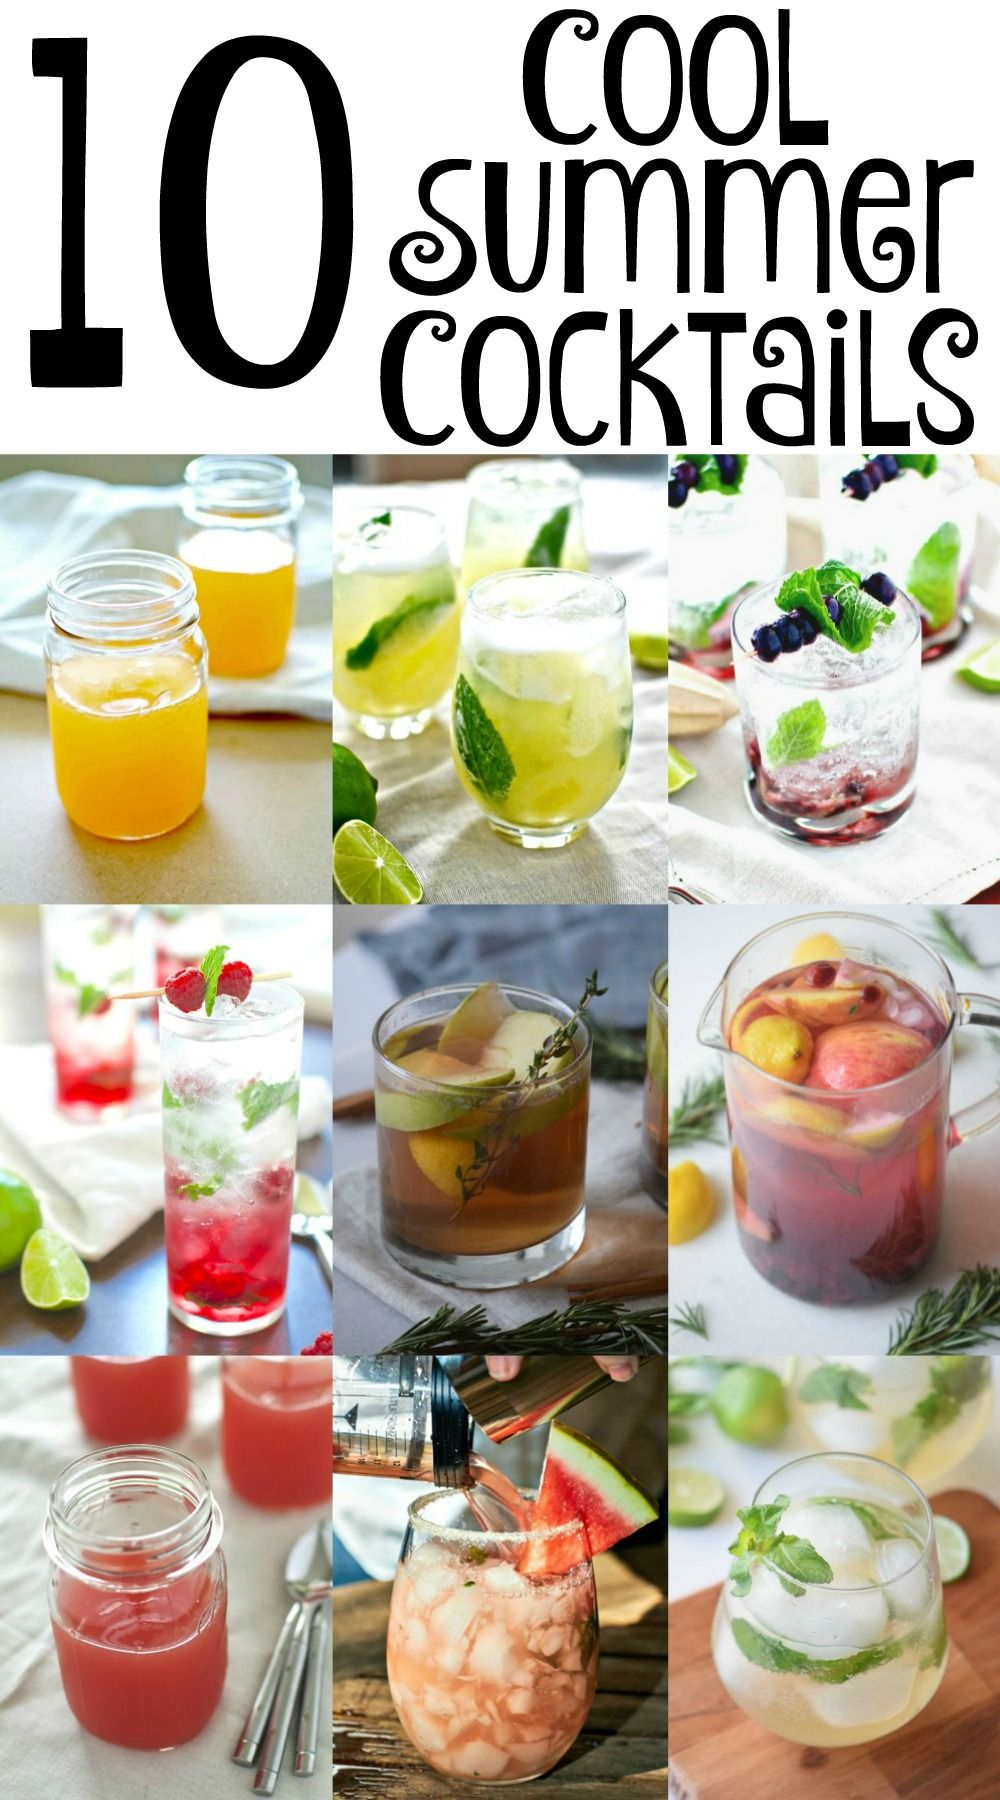 10 Lovely Cool Drink Ideas For Parties 10 cool summer cocktails alcoholic beverages drinks pinterest